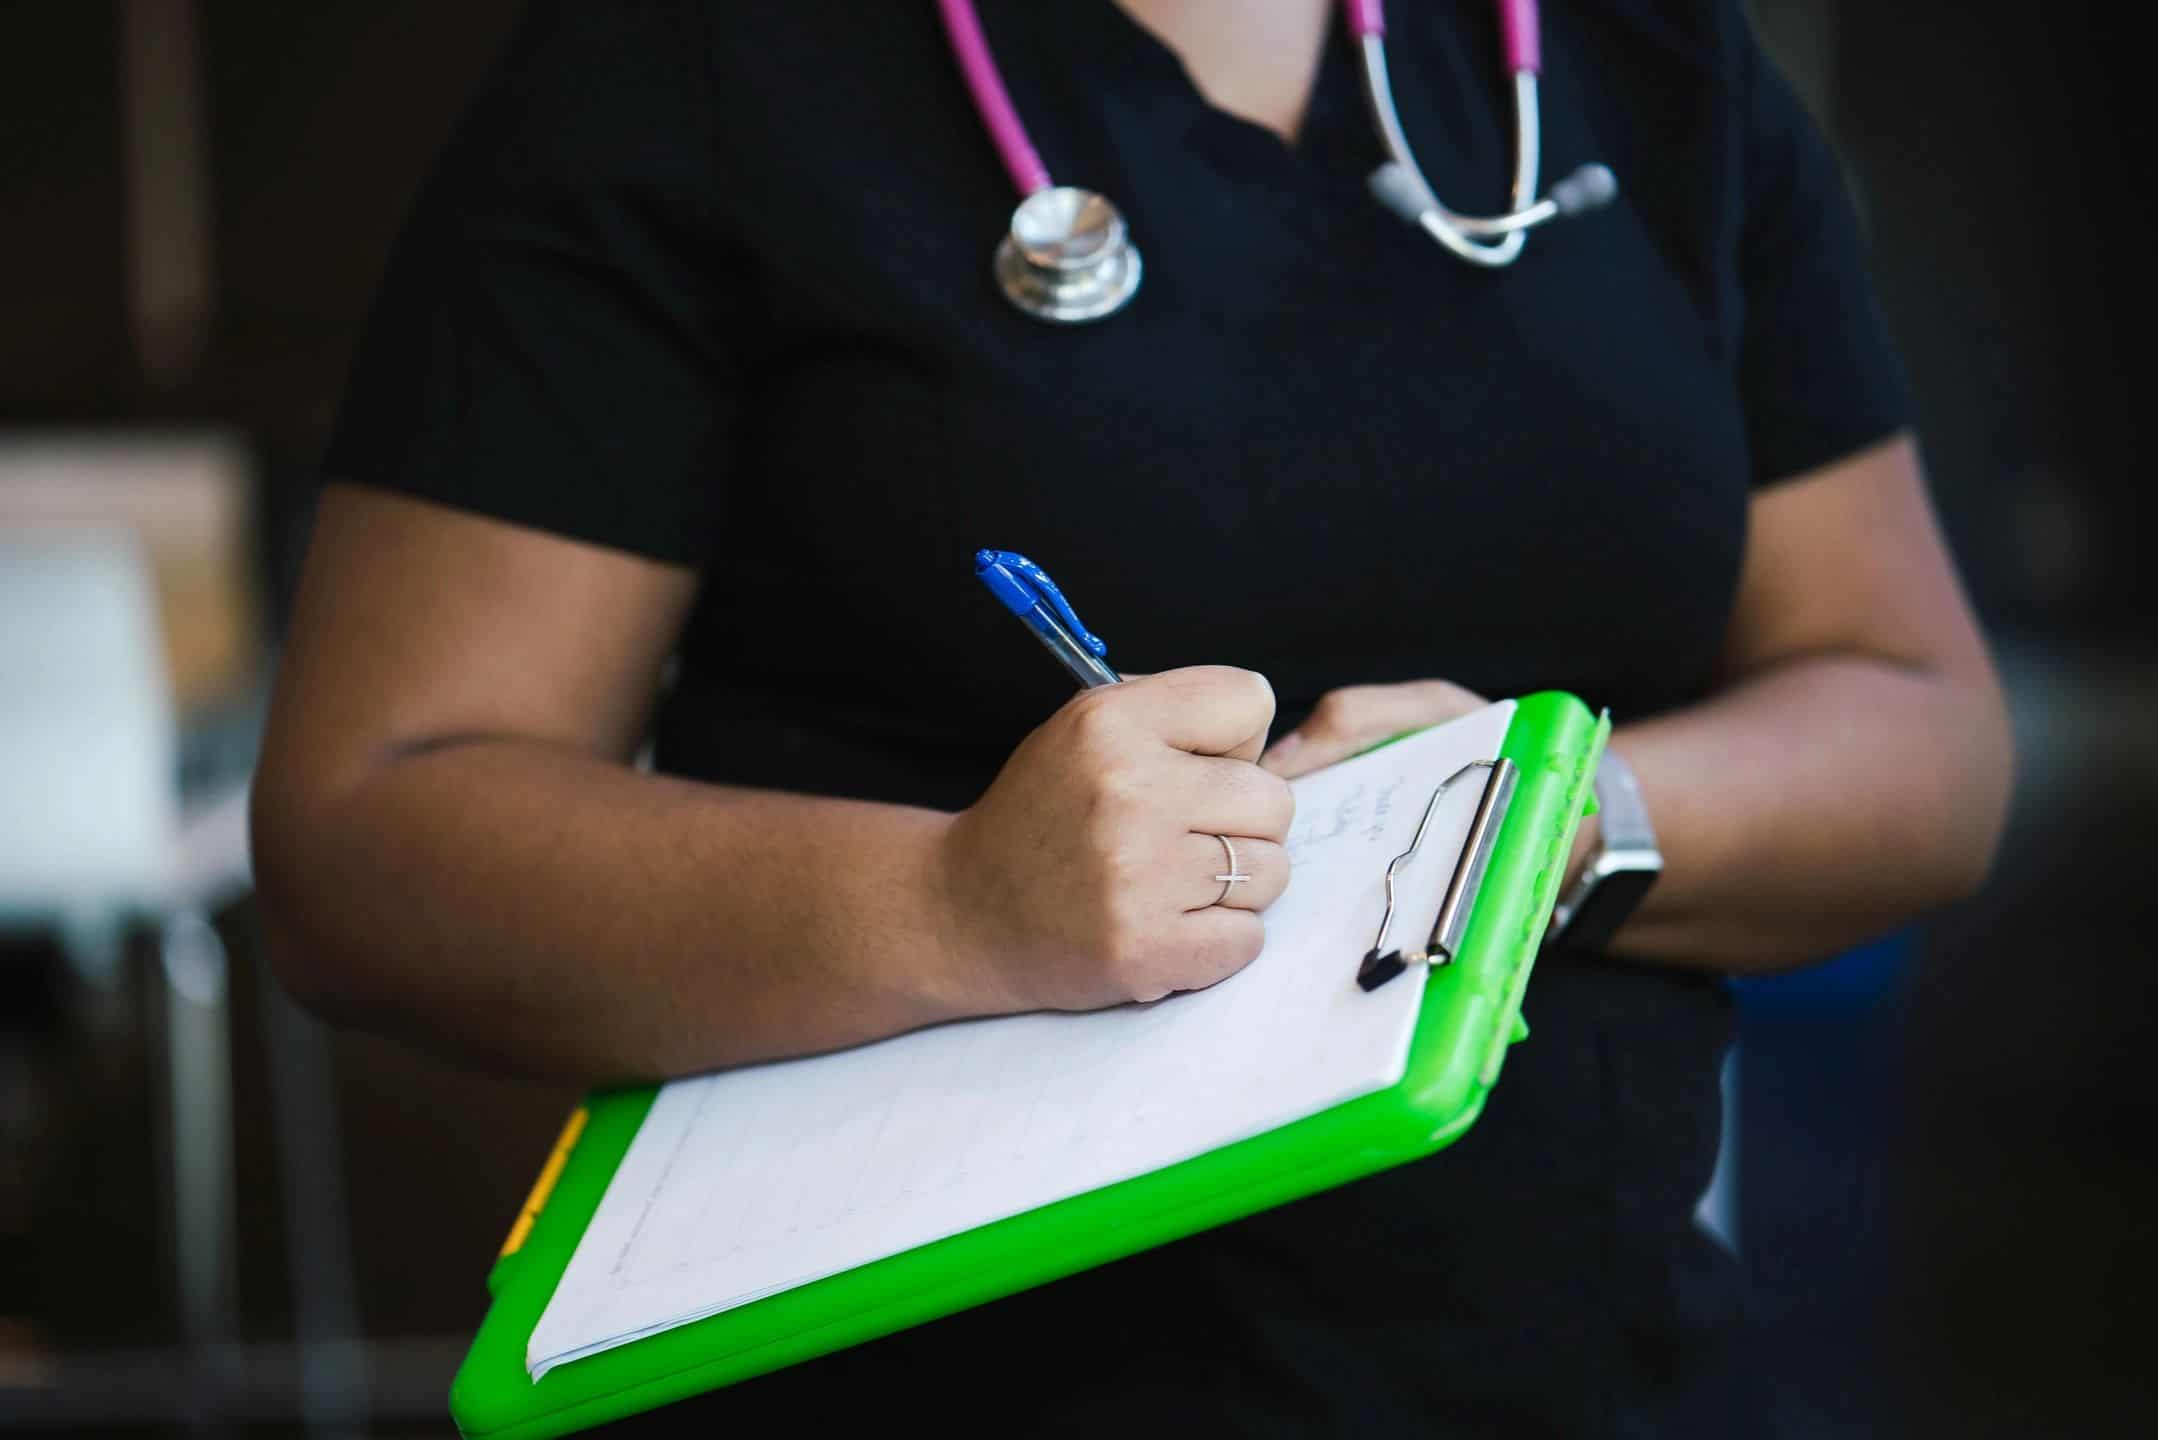 Photograph of a nurse holding a clipboard and writing notes